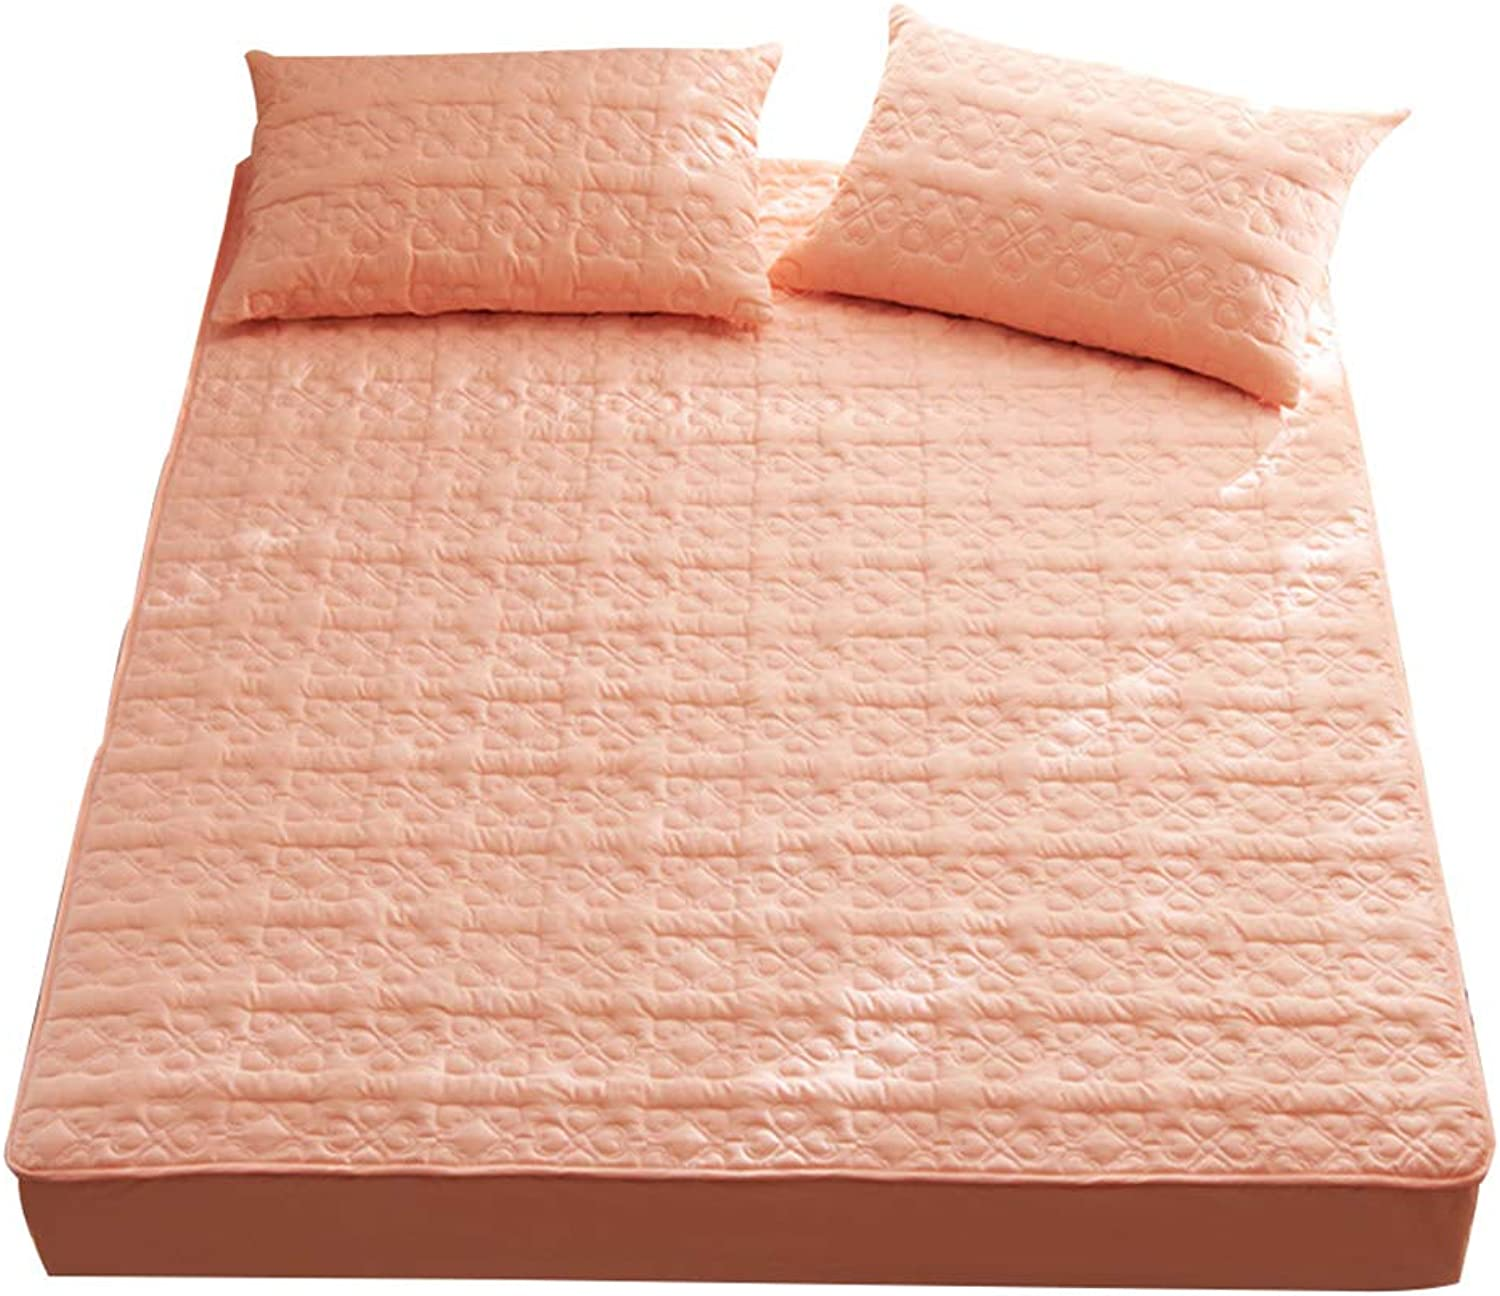 ZHAOHUI Mattress Predector Cotton Breathable Anti-mite Keep Warm Quilted Soft and Comfortable, 2 Packages are Available, 6 colors, 3 Sizes (color   orange-1ps, Size   150X200cm)